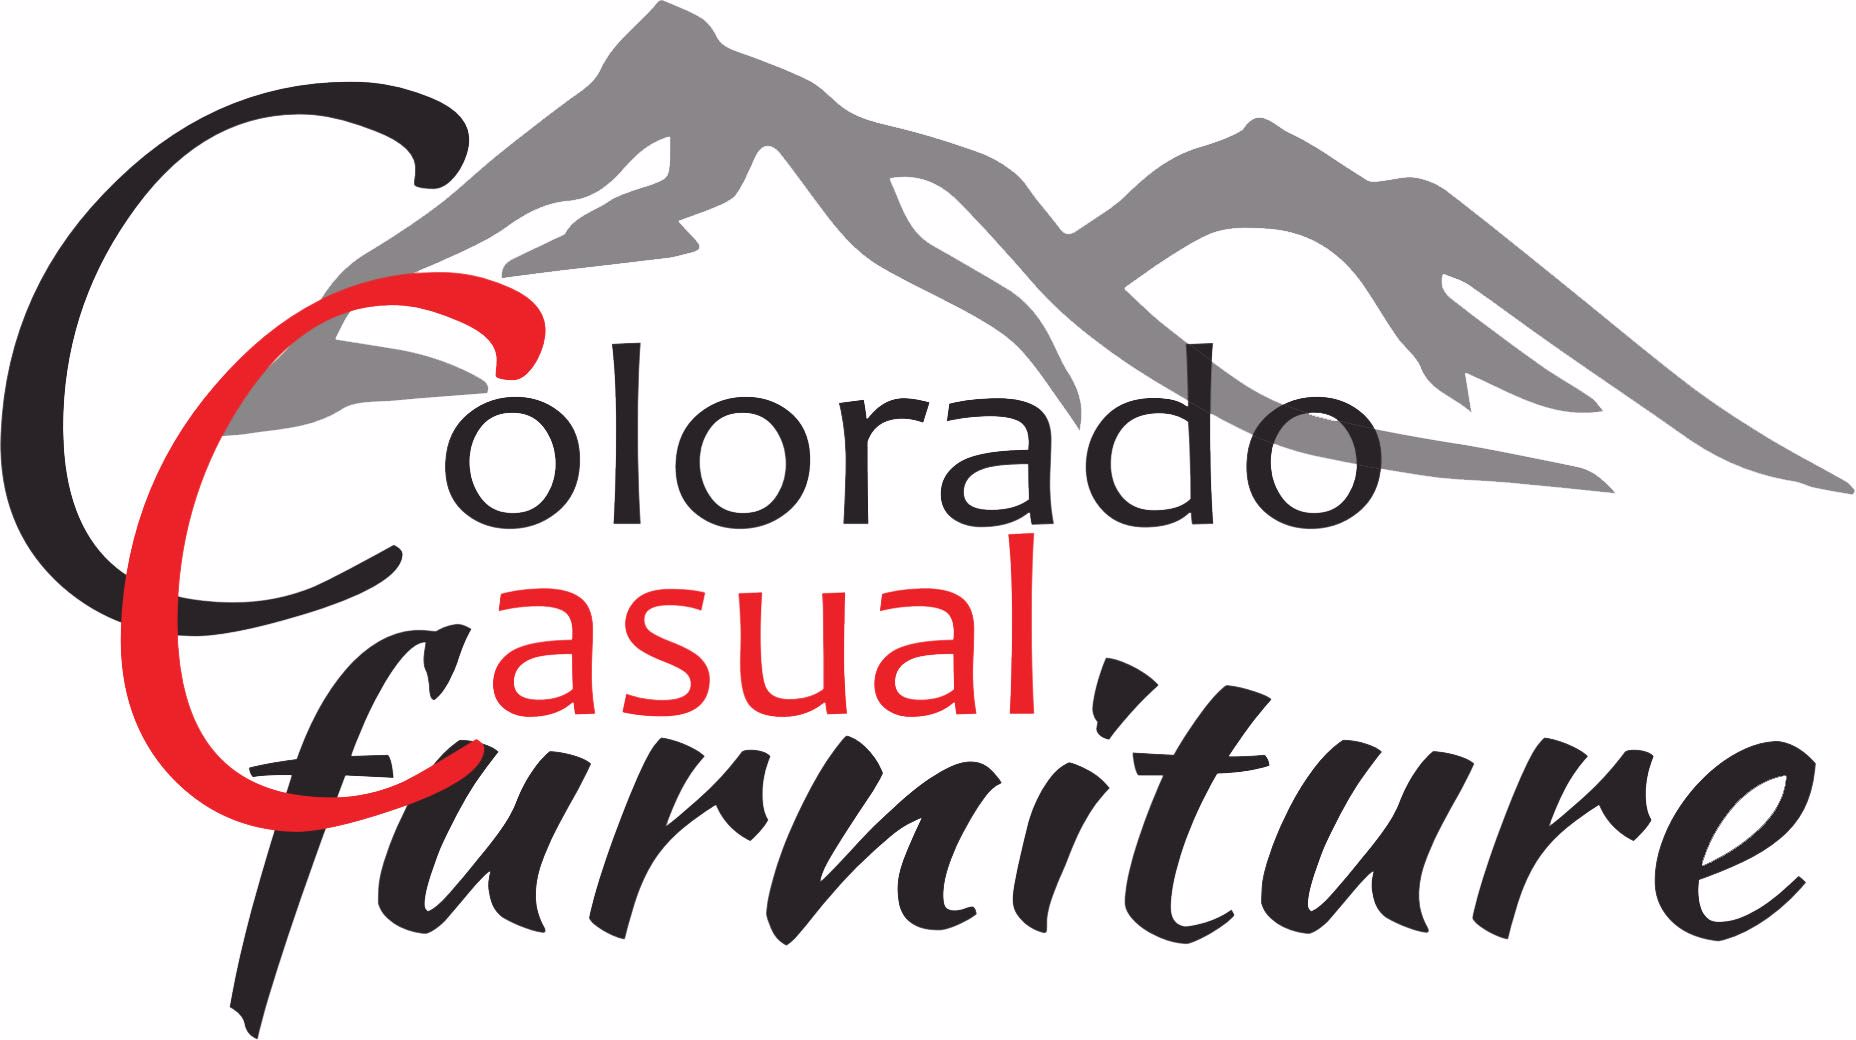 Colorado Casual Furniture